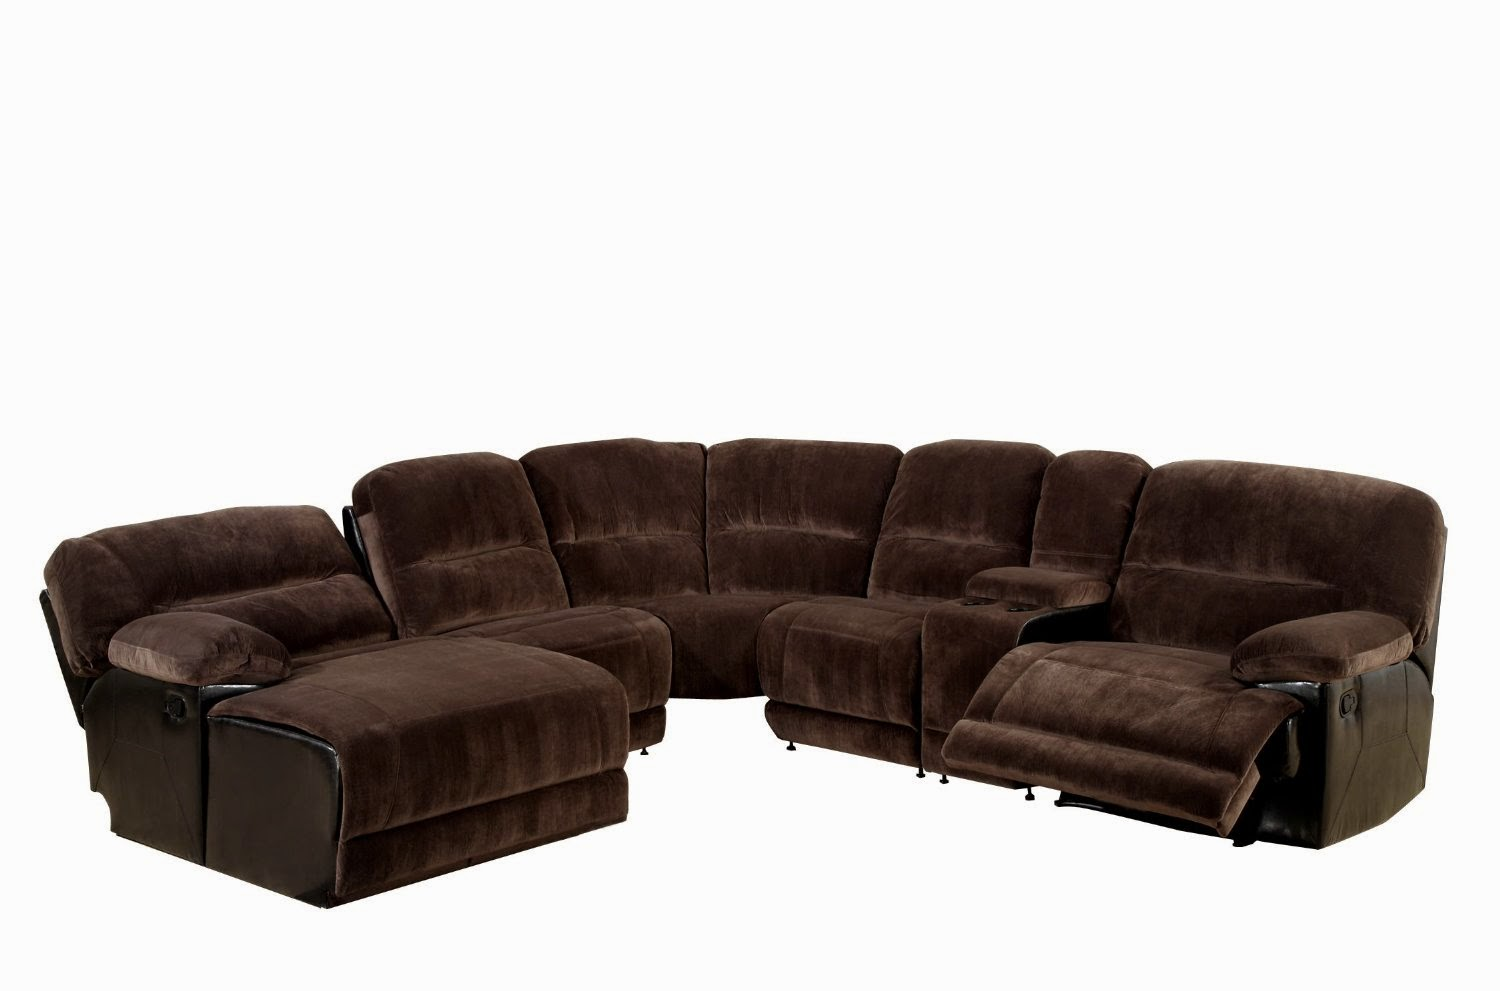 Reclining Sofas For Sale Cheap Saddle Microfiber